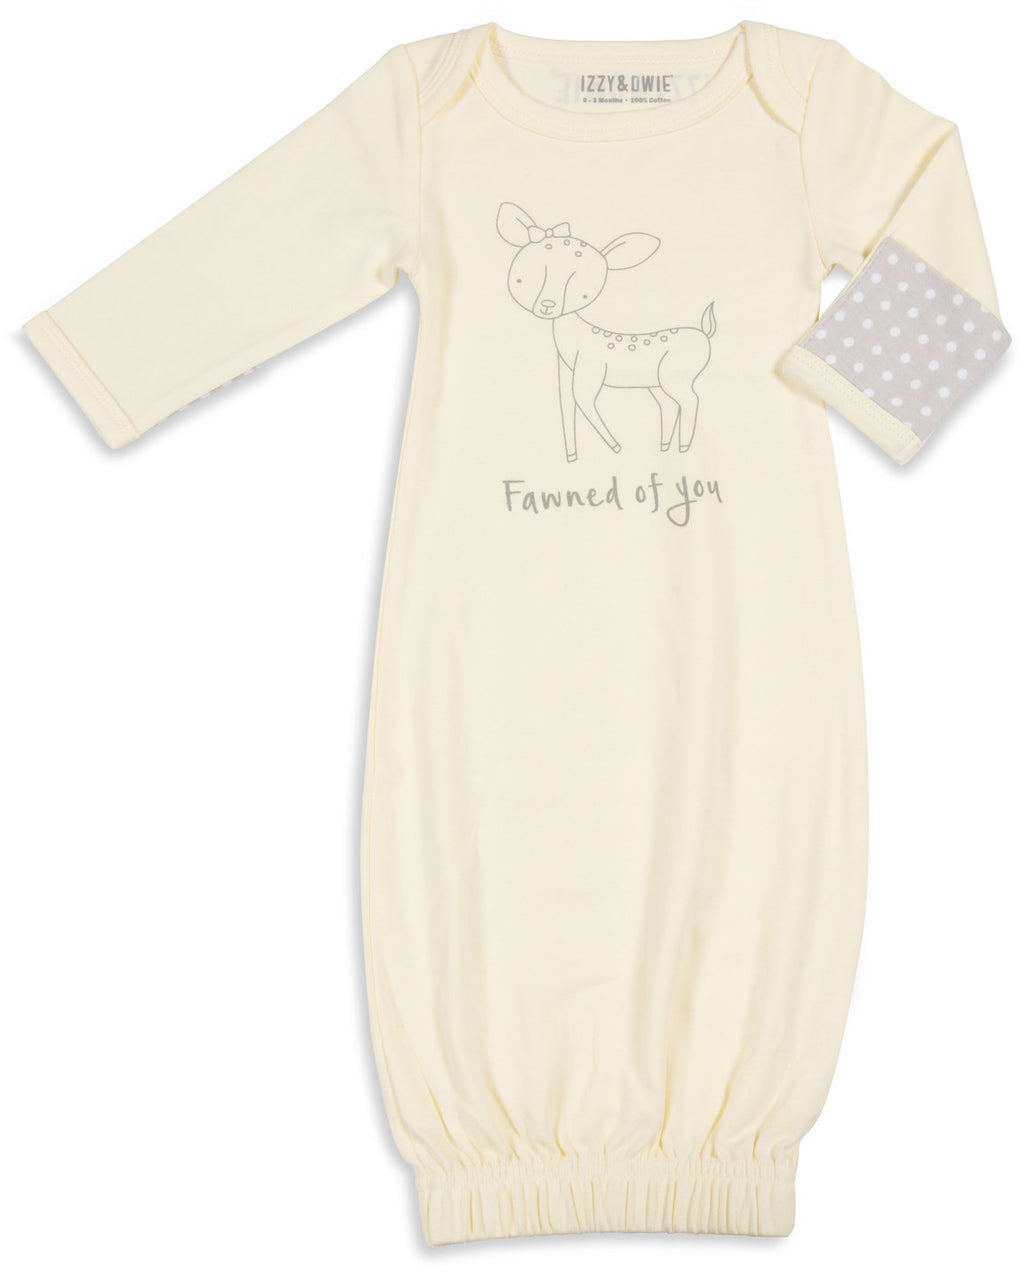 Fawned of you 0-3 Months Gown with Mitten Cuffs Baby Gown Izzy & Owie - GigglesGear.com